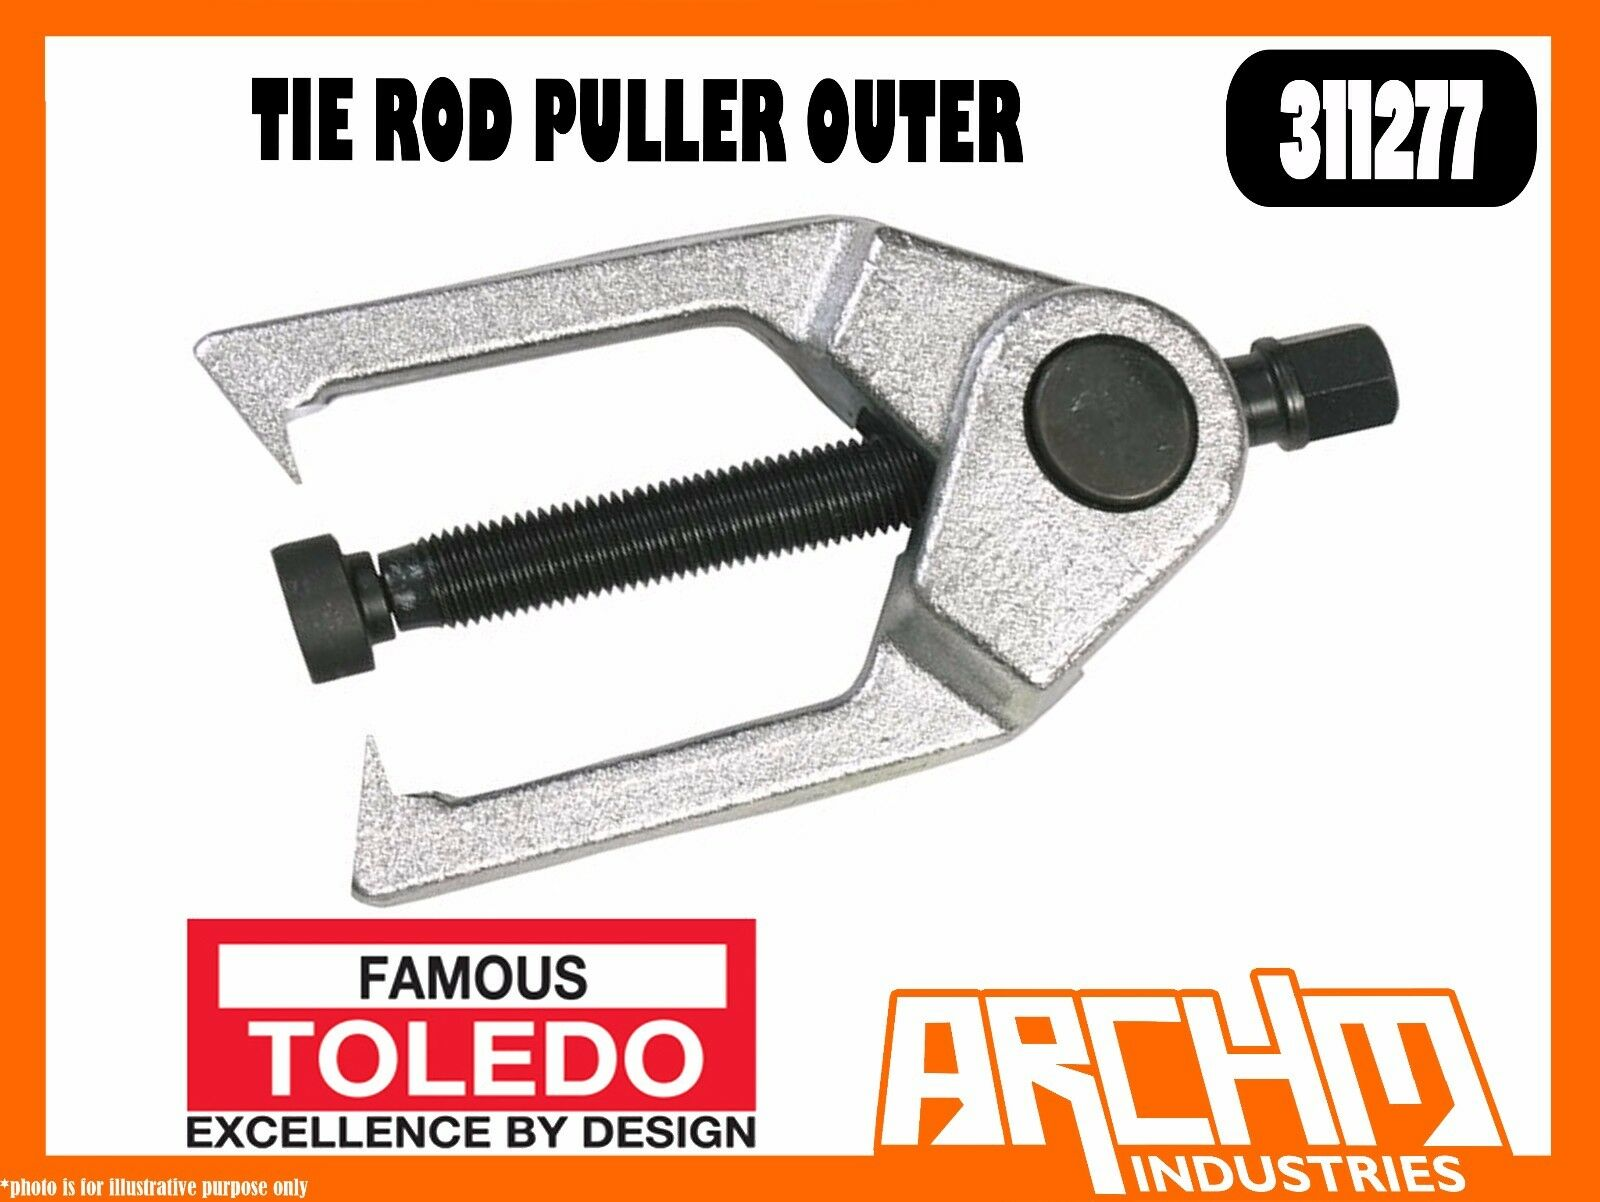 TOLEDO 311277 - TIE ROD PULLER OUTER - TIE ROD ENDS BALL JOINTS BEARING GEARS